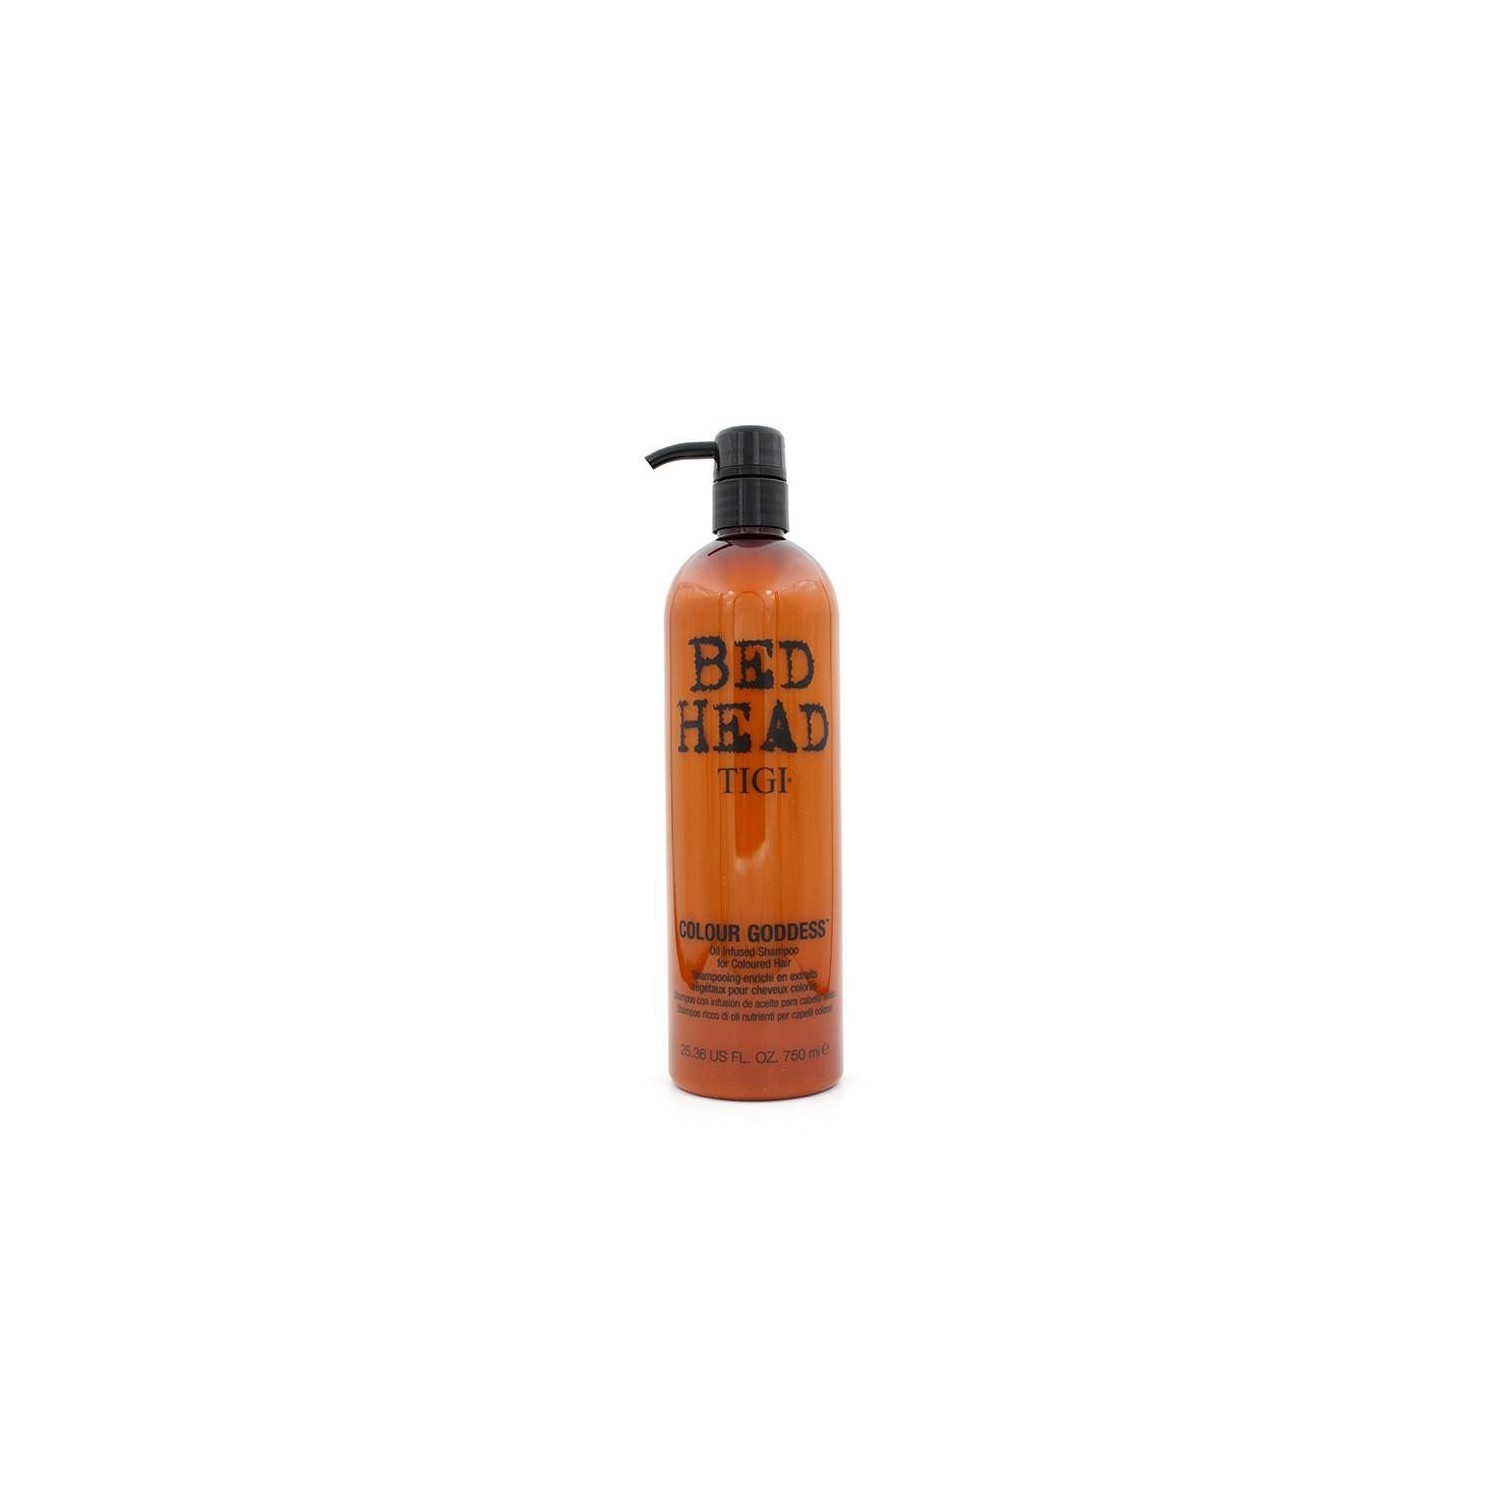 Tigi Bed Head Couleur Goddess Oil Infused Shampooing 750 Ml